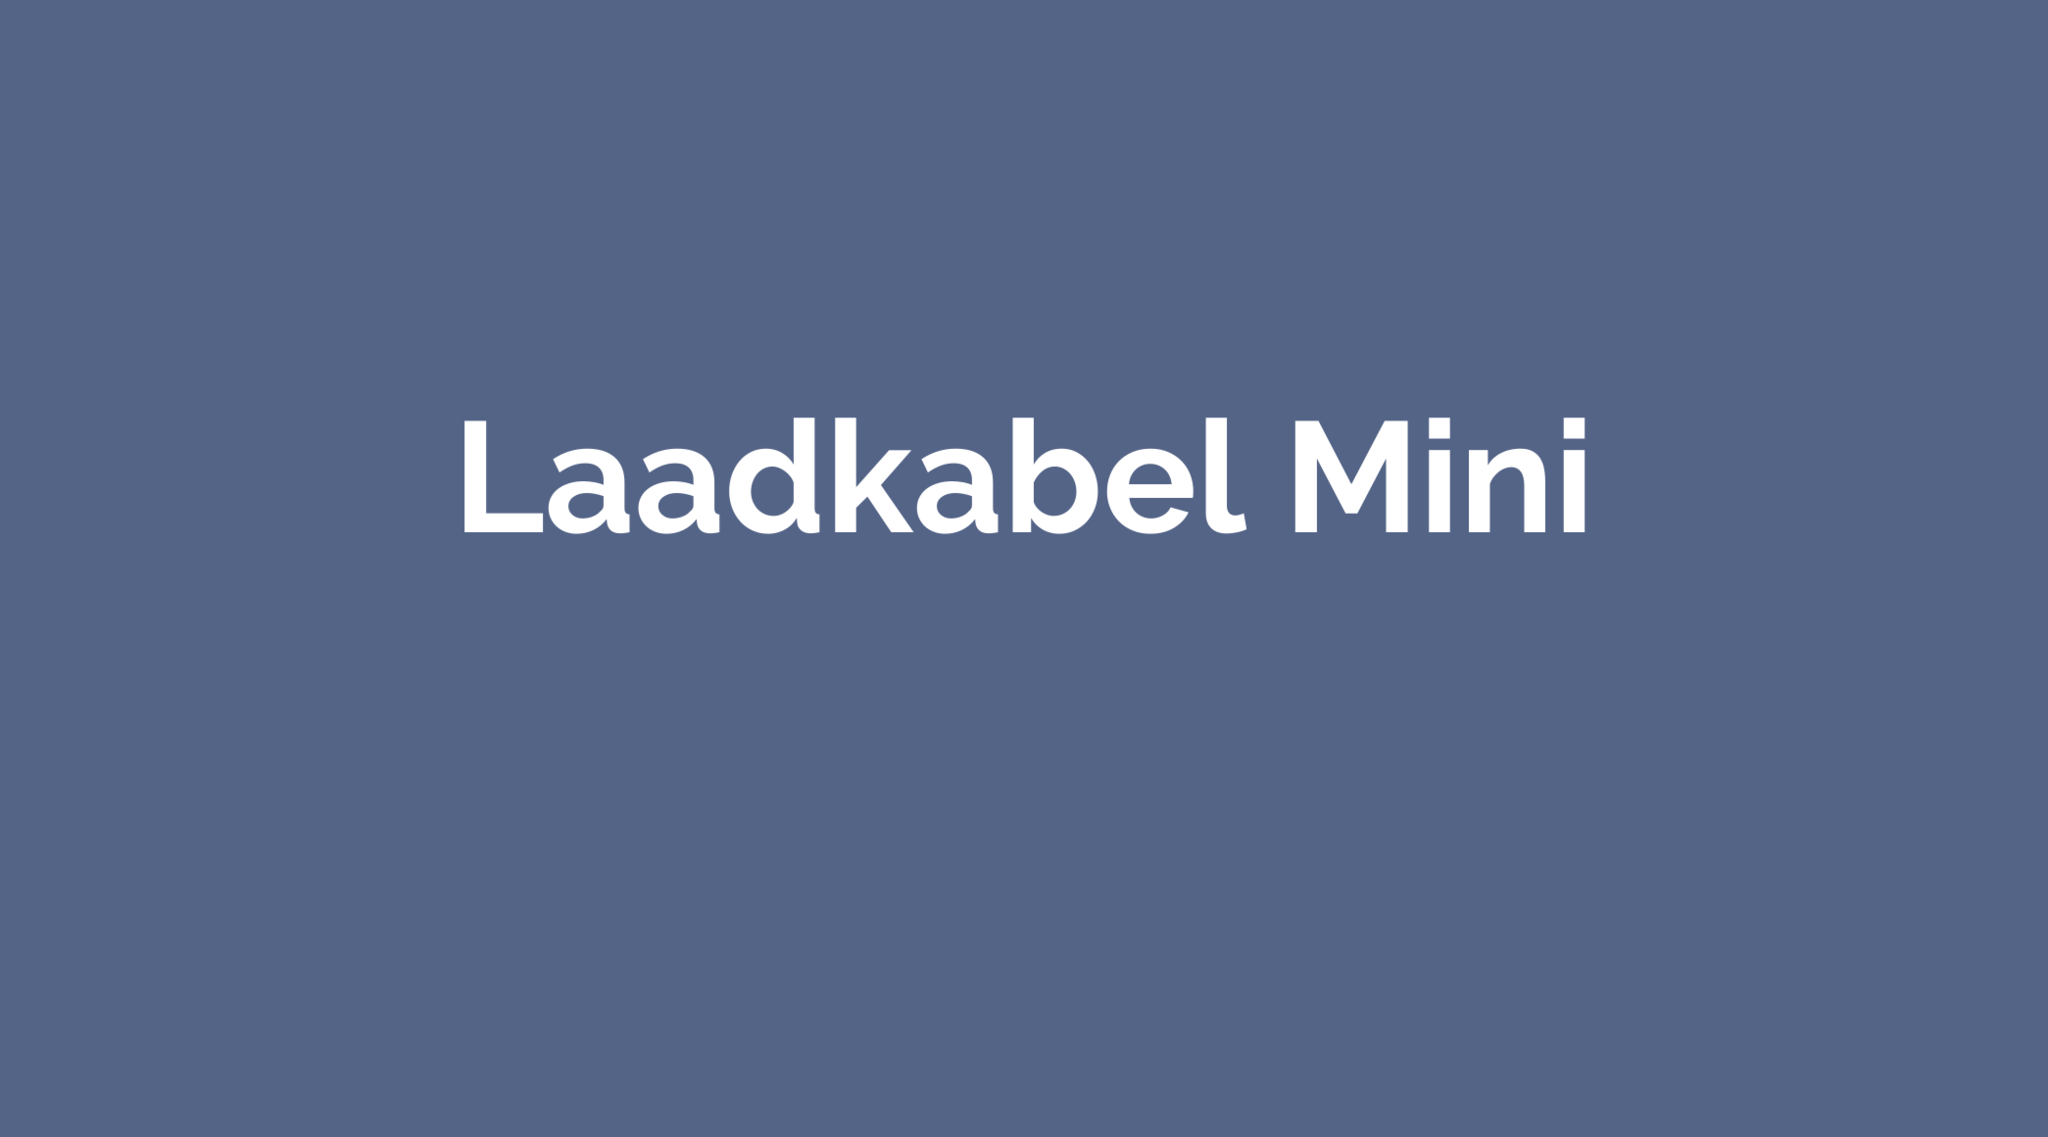 Laadkabel Mini